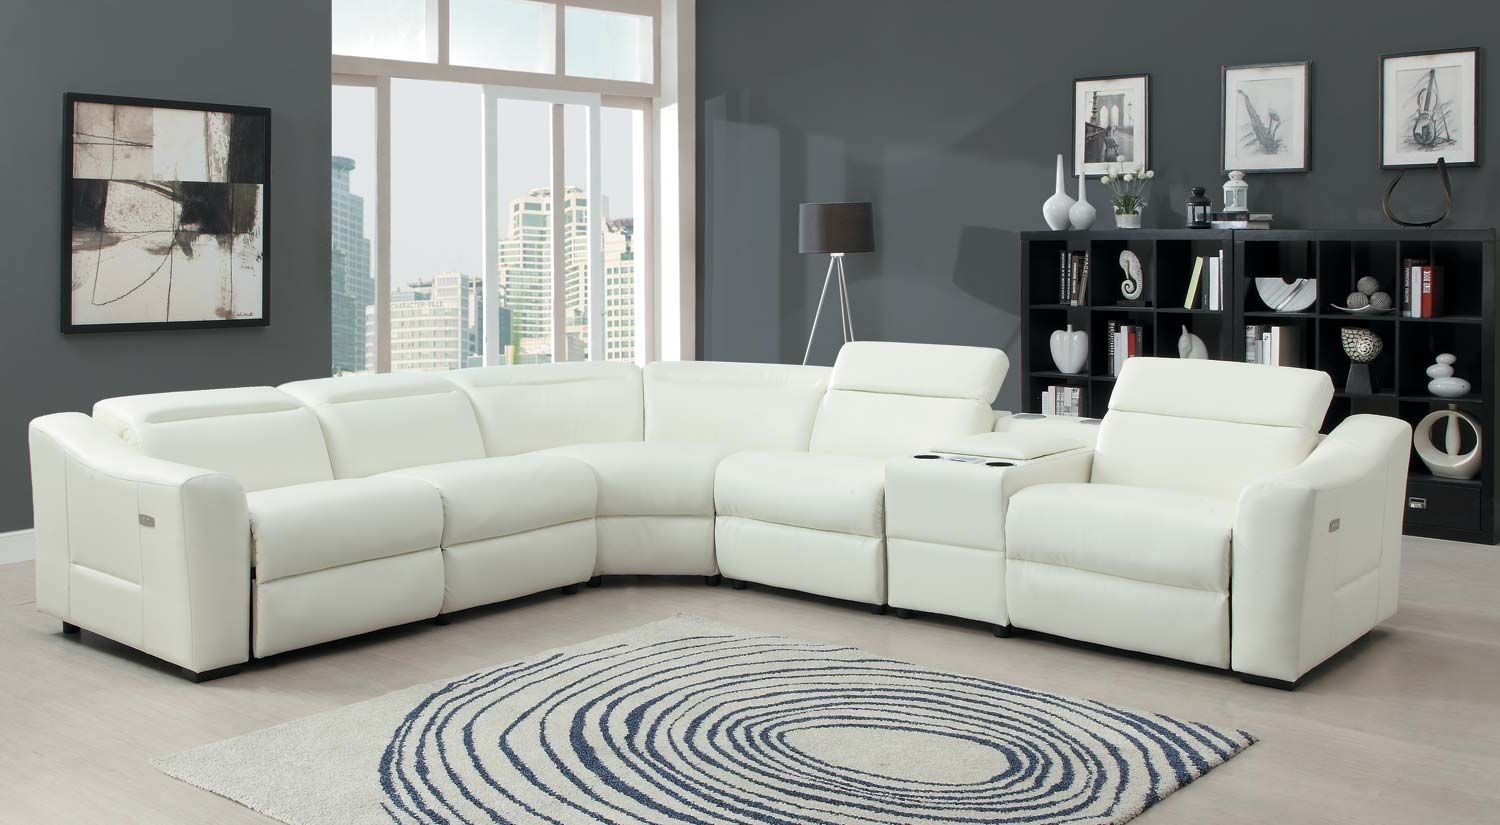 Awesome White Leather Reclining Sofa Fantastic 87 About Remodel